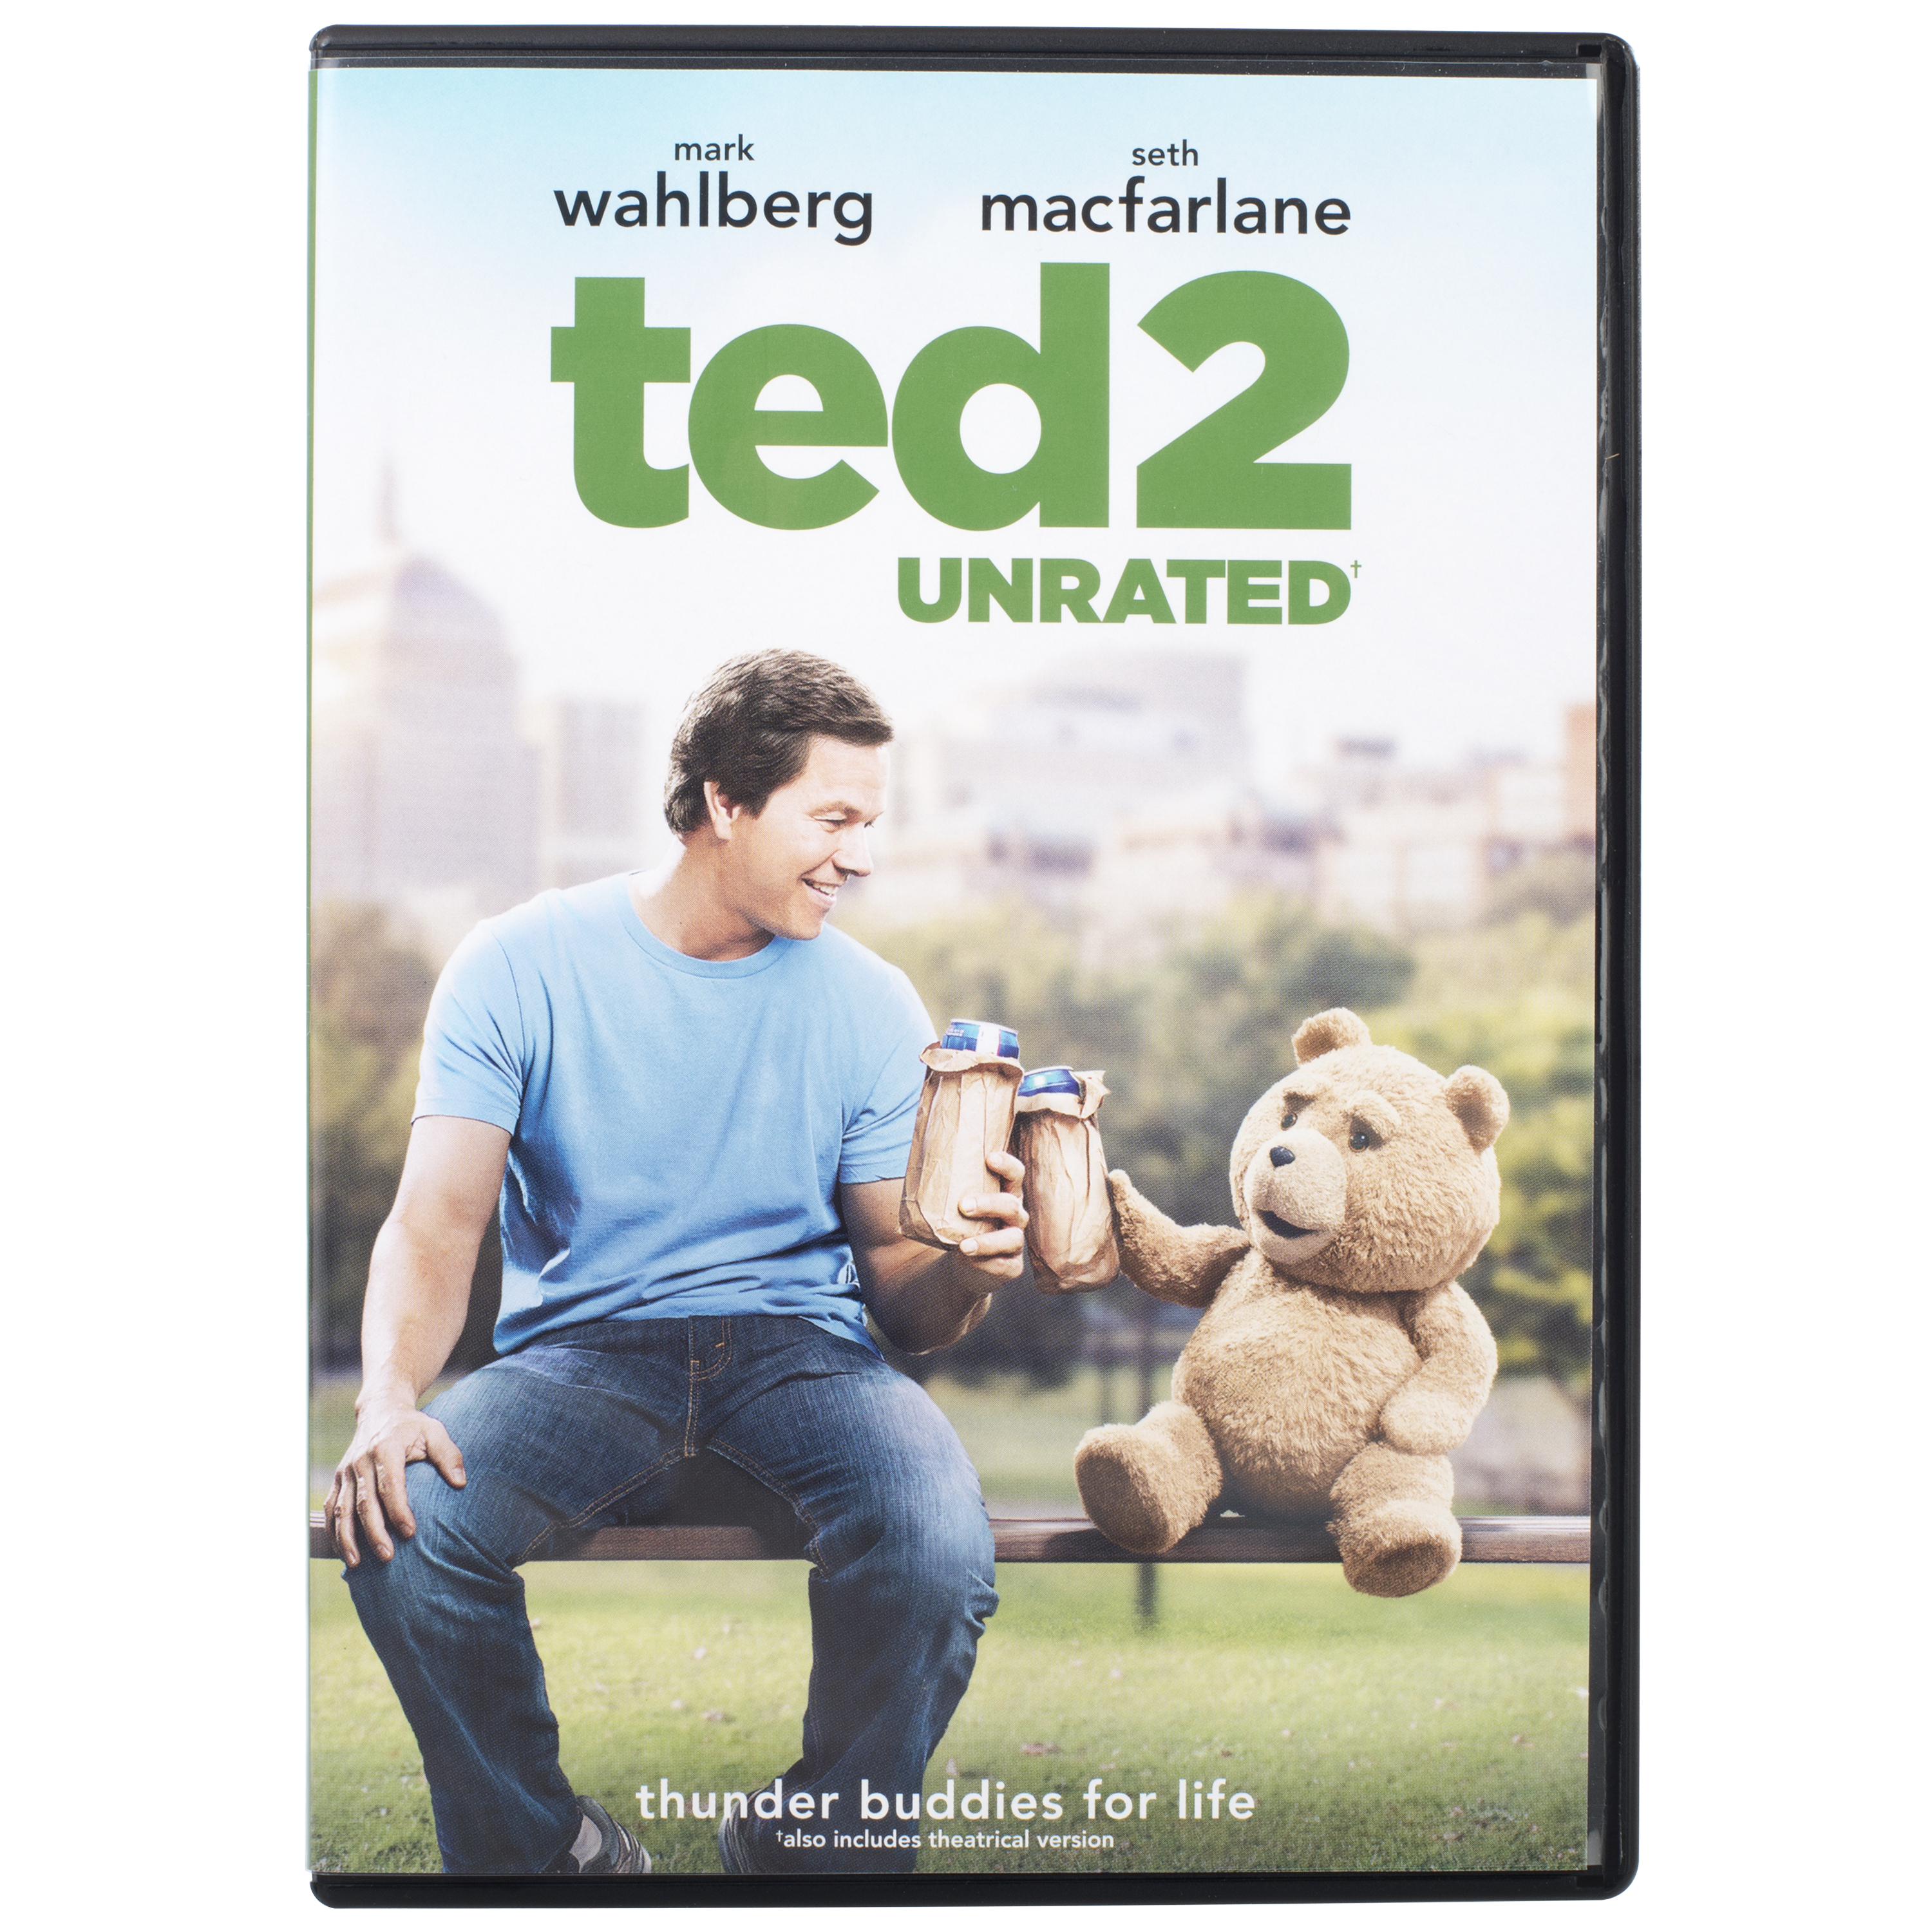 Ted 2 Unrated DVD + DIGITAL HD Combo Pack